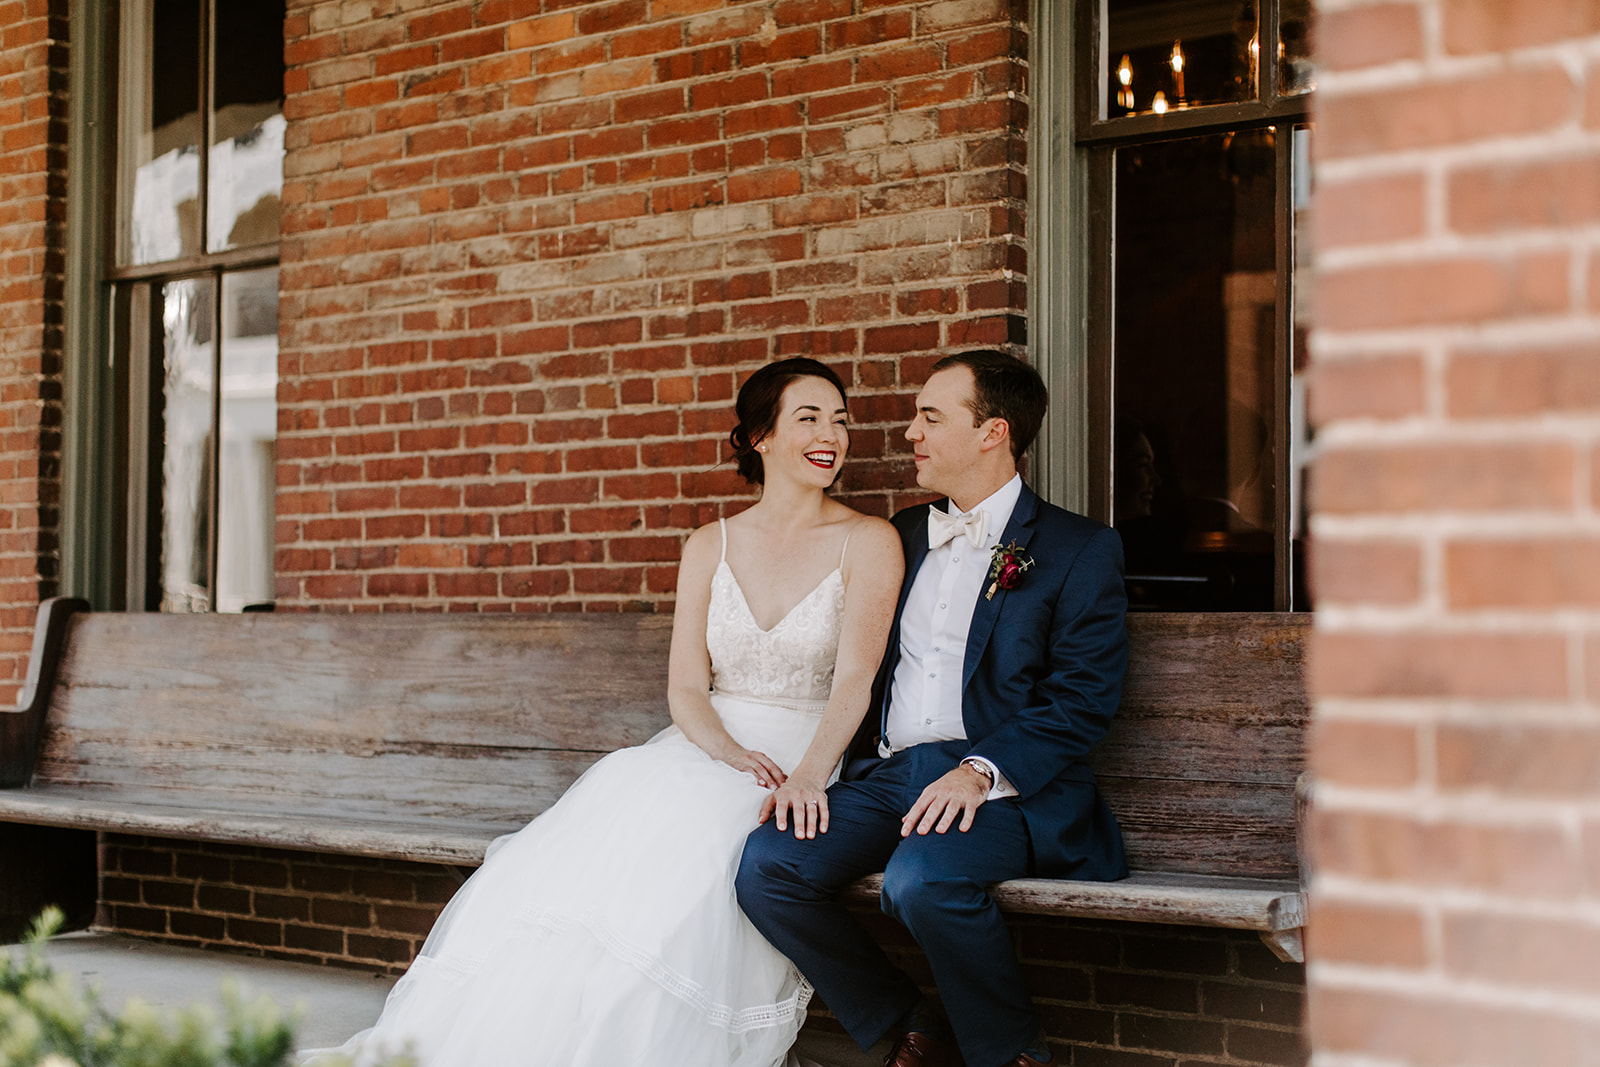 Tennessee Wedding Photographer | Nashville Bride Guide